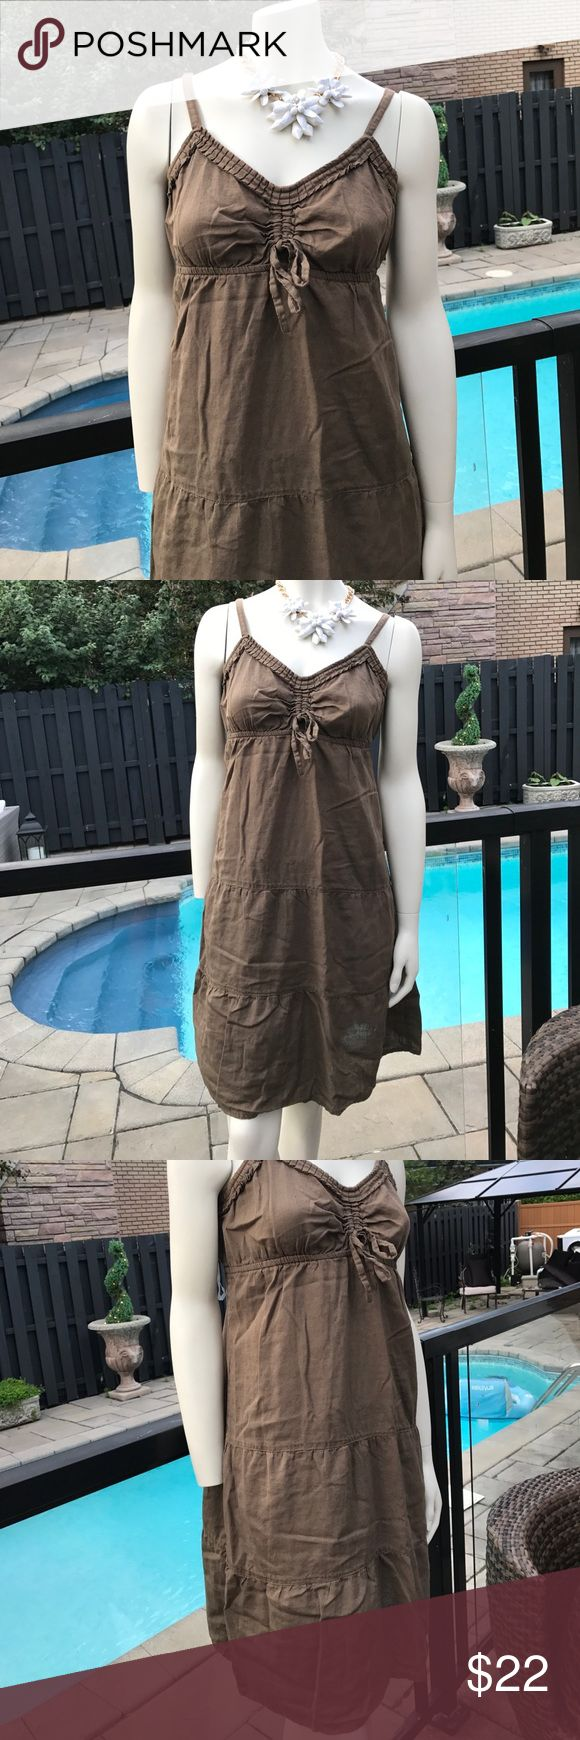 End of season sale. Lightweight linen dress Cute and comfortable for those hot summer days. The colour is khaki Reitmans Dresses Midi